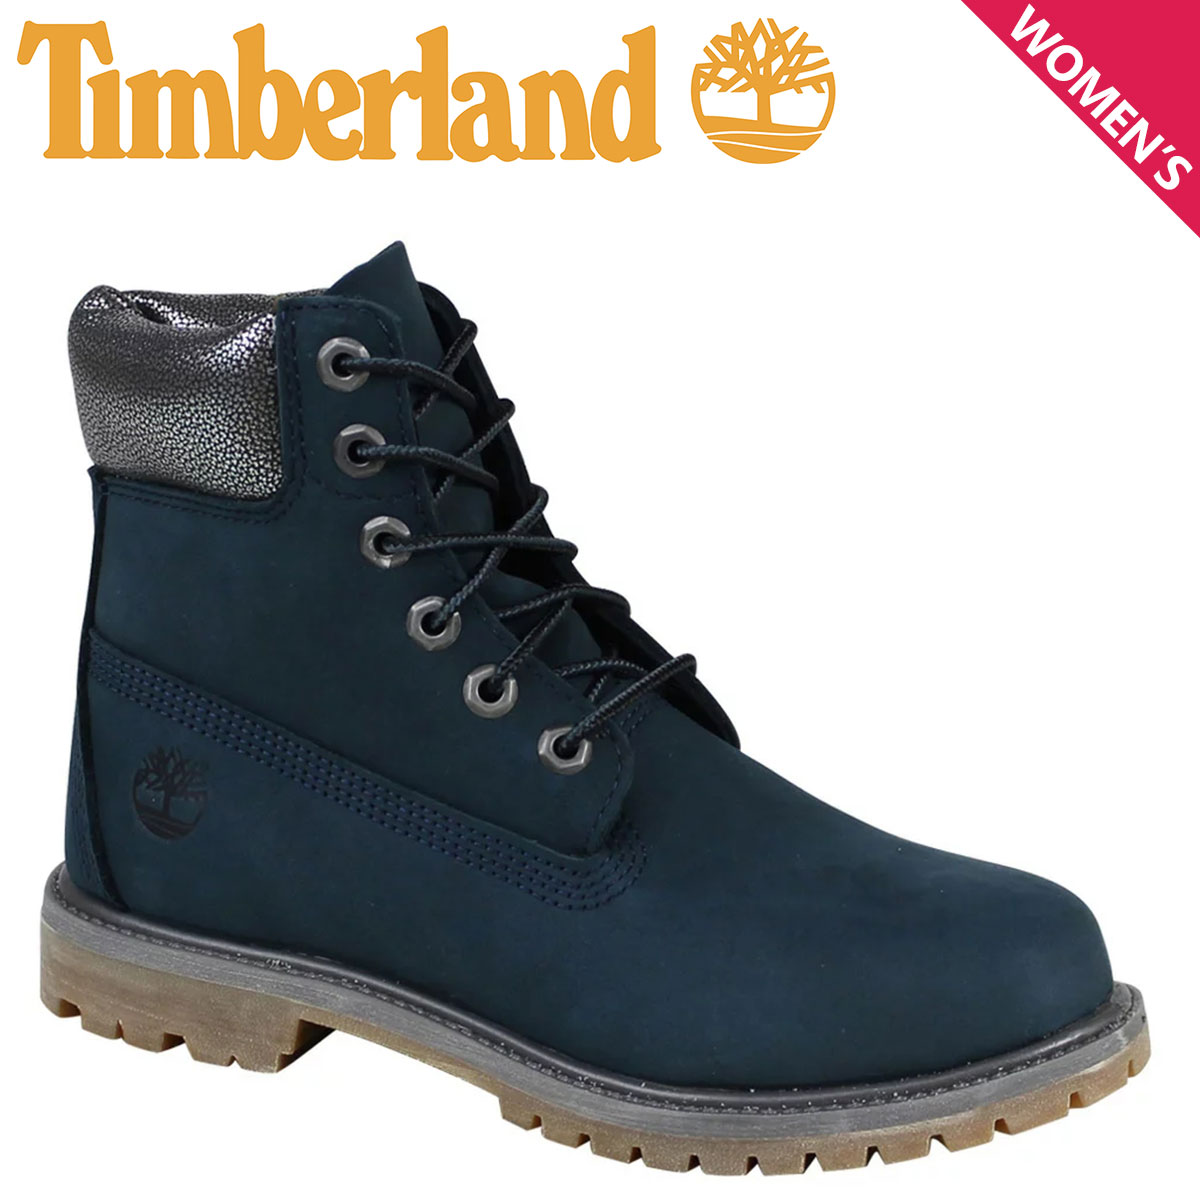 bf4fbd544 ... introduced in 1973, fully waterproof boots, since, from a relaxing  weekend can be total coordination up to casual styling during the business  week, ...